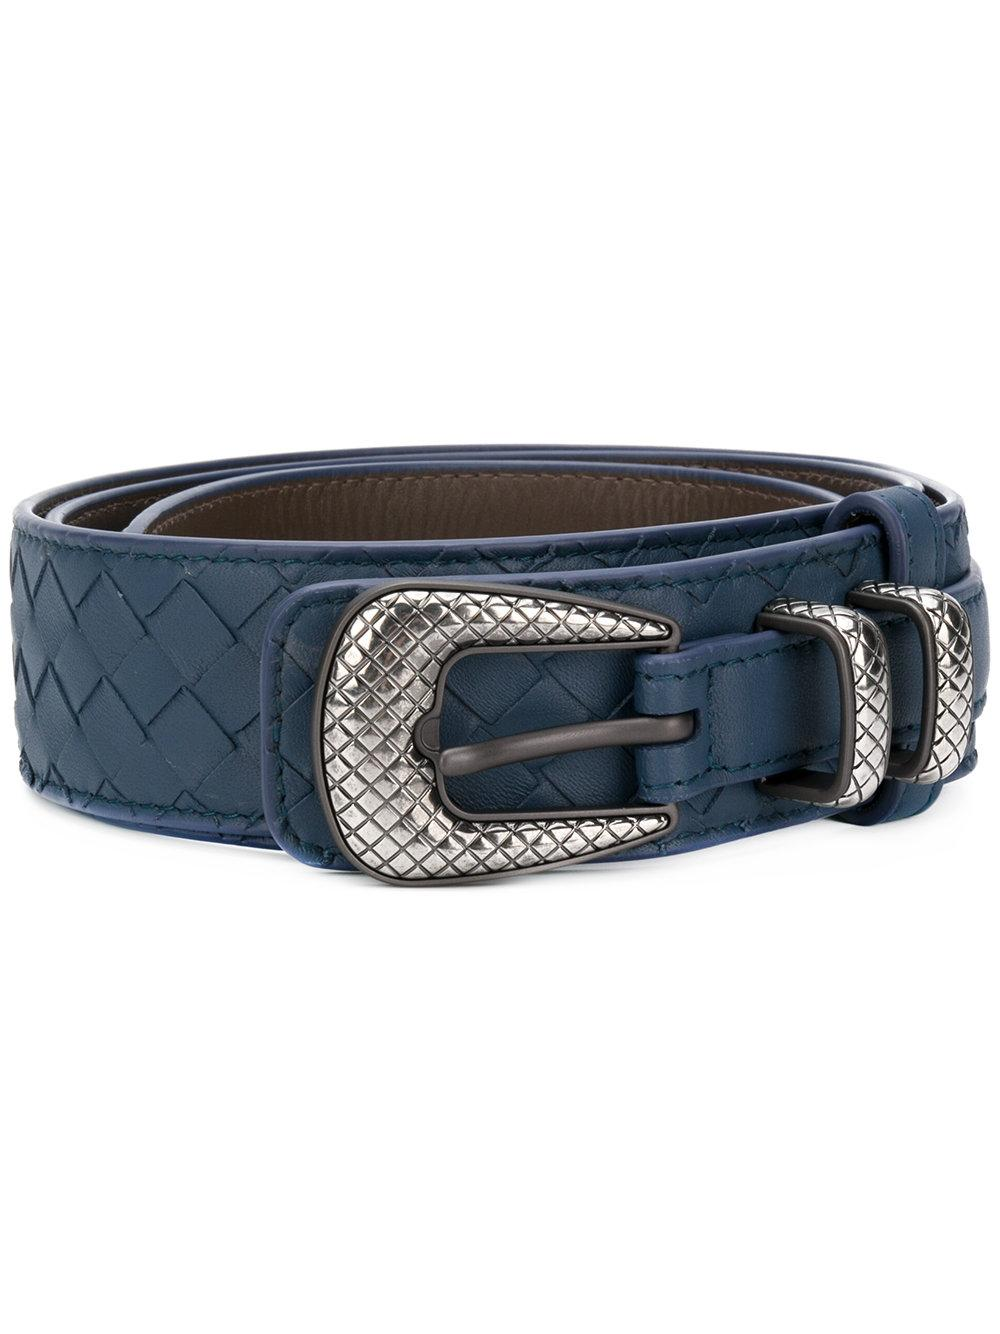 50a57d75b3 Bottega Veneta Denim Intrecciato Nappa Belt - Blue